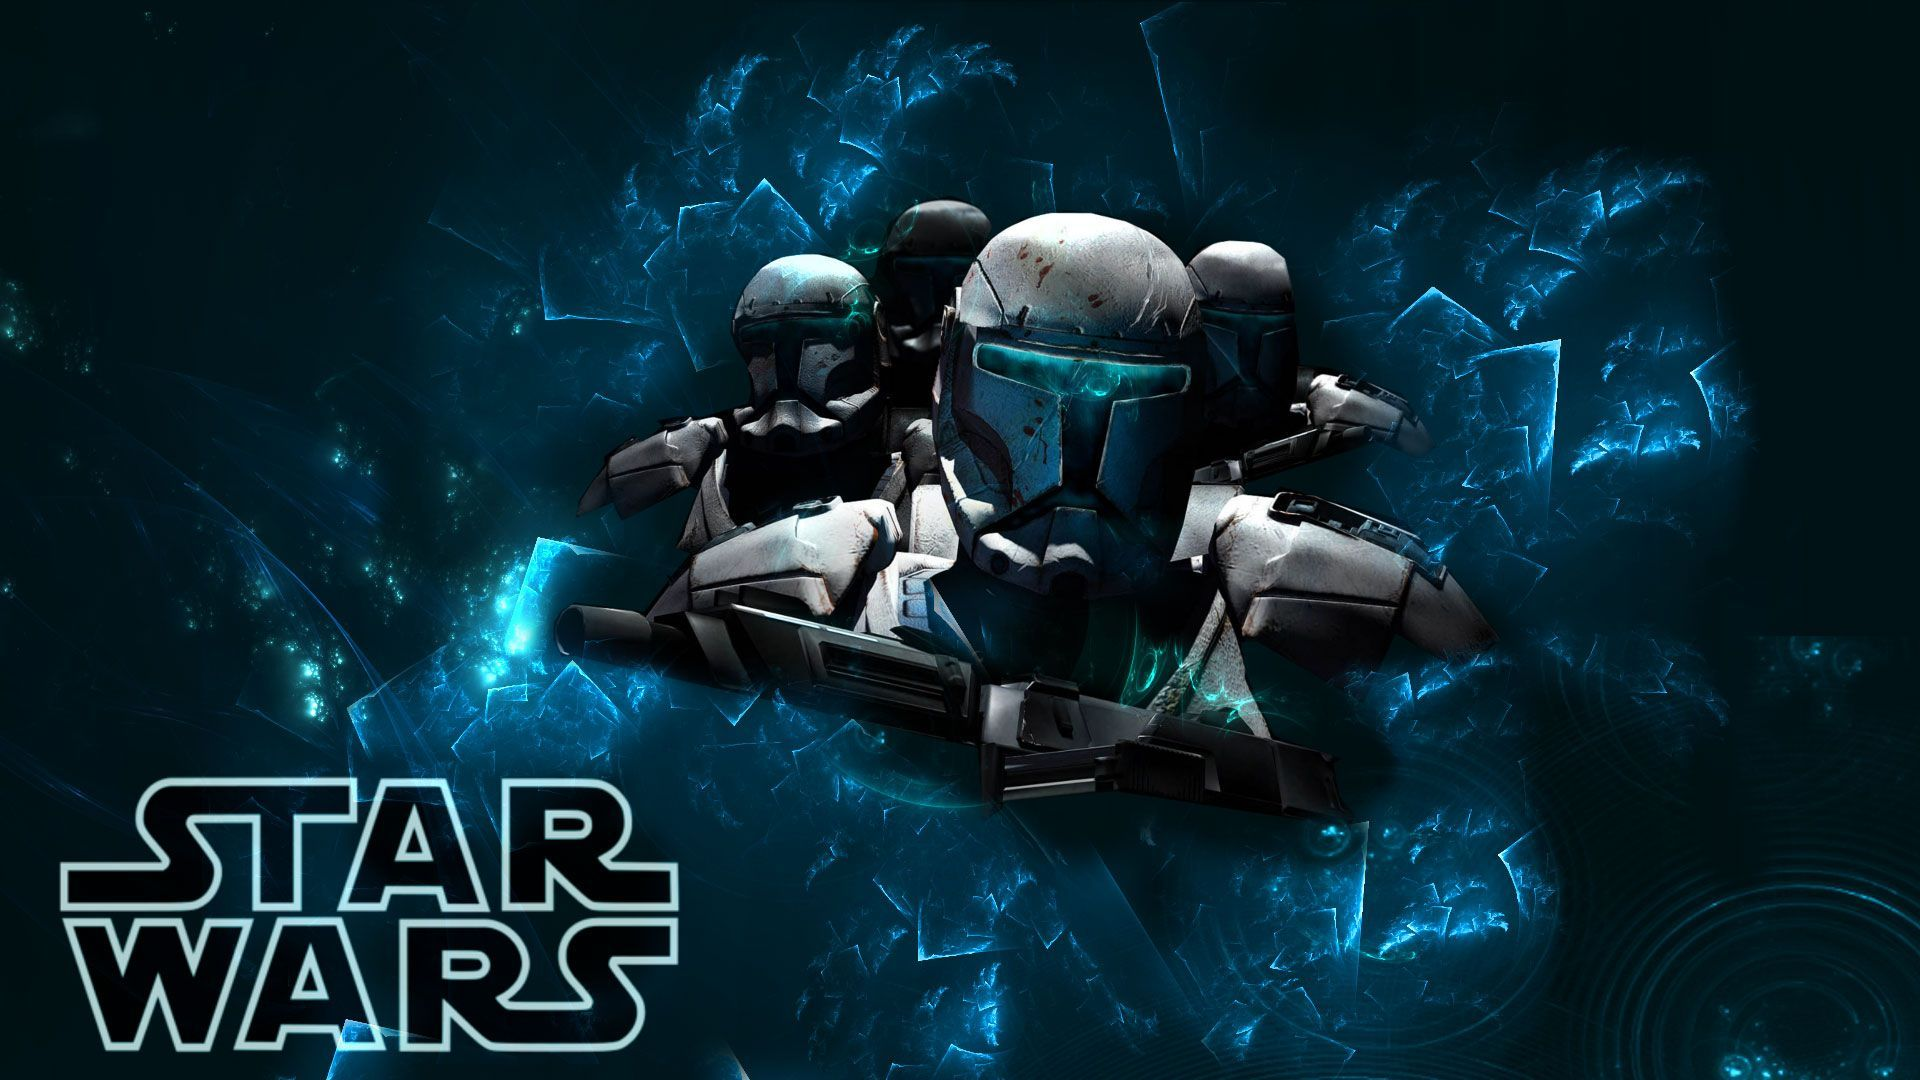 73 Star Wars Clone Trooper Wallpaper On Wallpapersafari